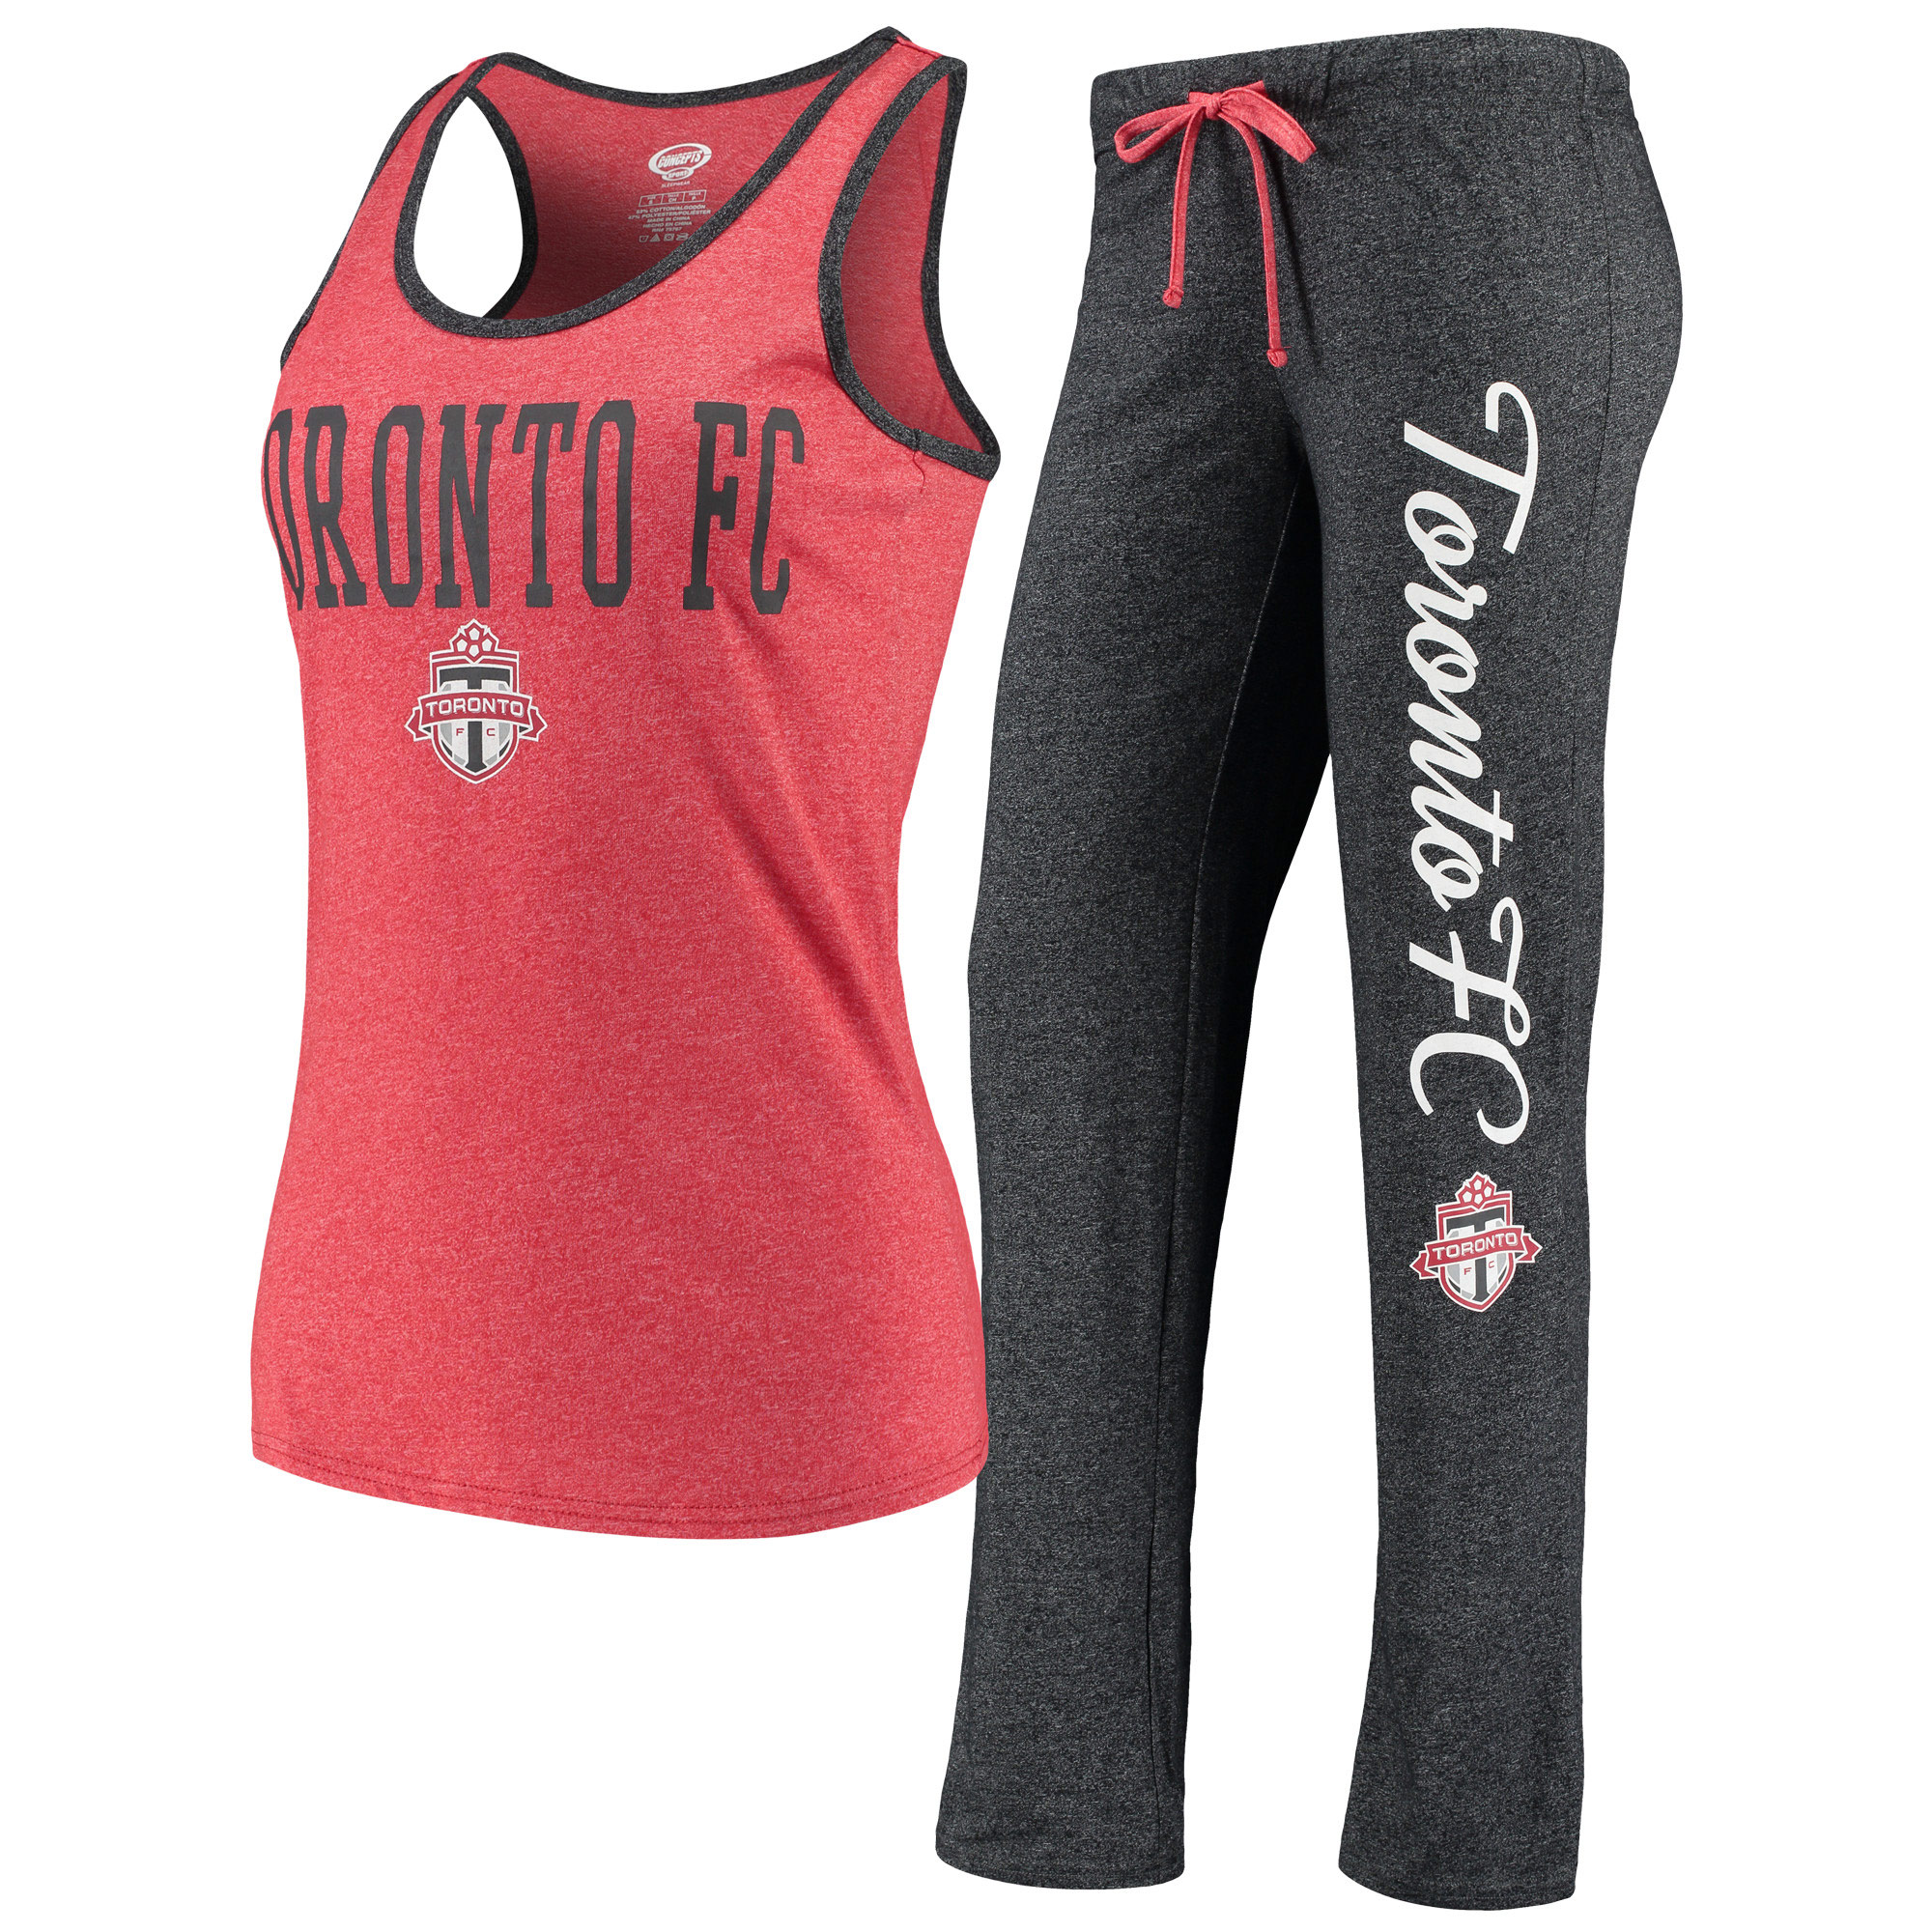 Toronto FC Concepts Sport Women's Spar Tank Top & Pants Sleep Set - Heathered Red/Heathered Charcoal